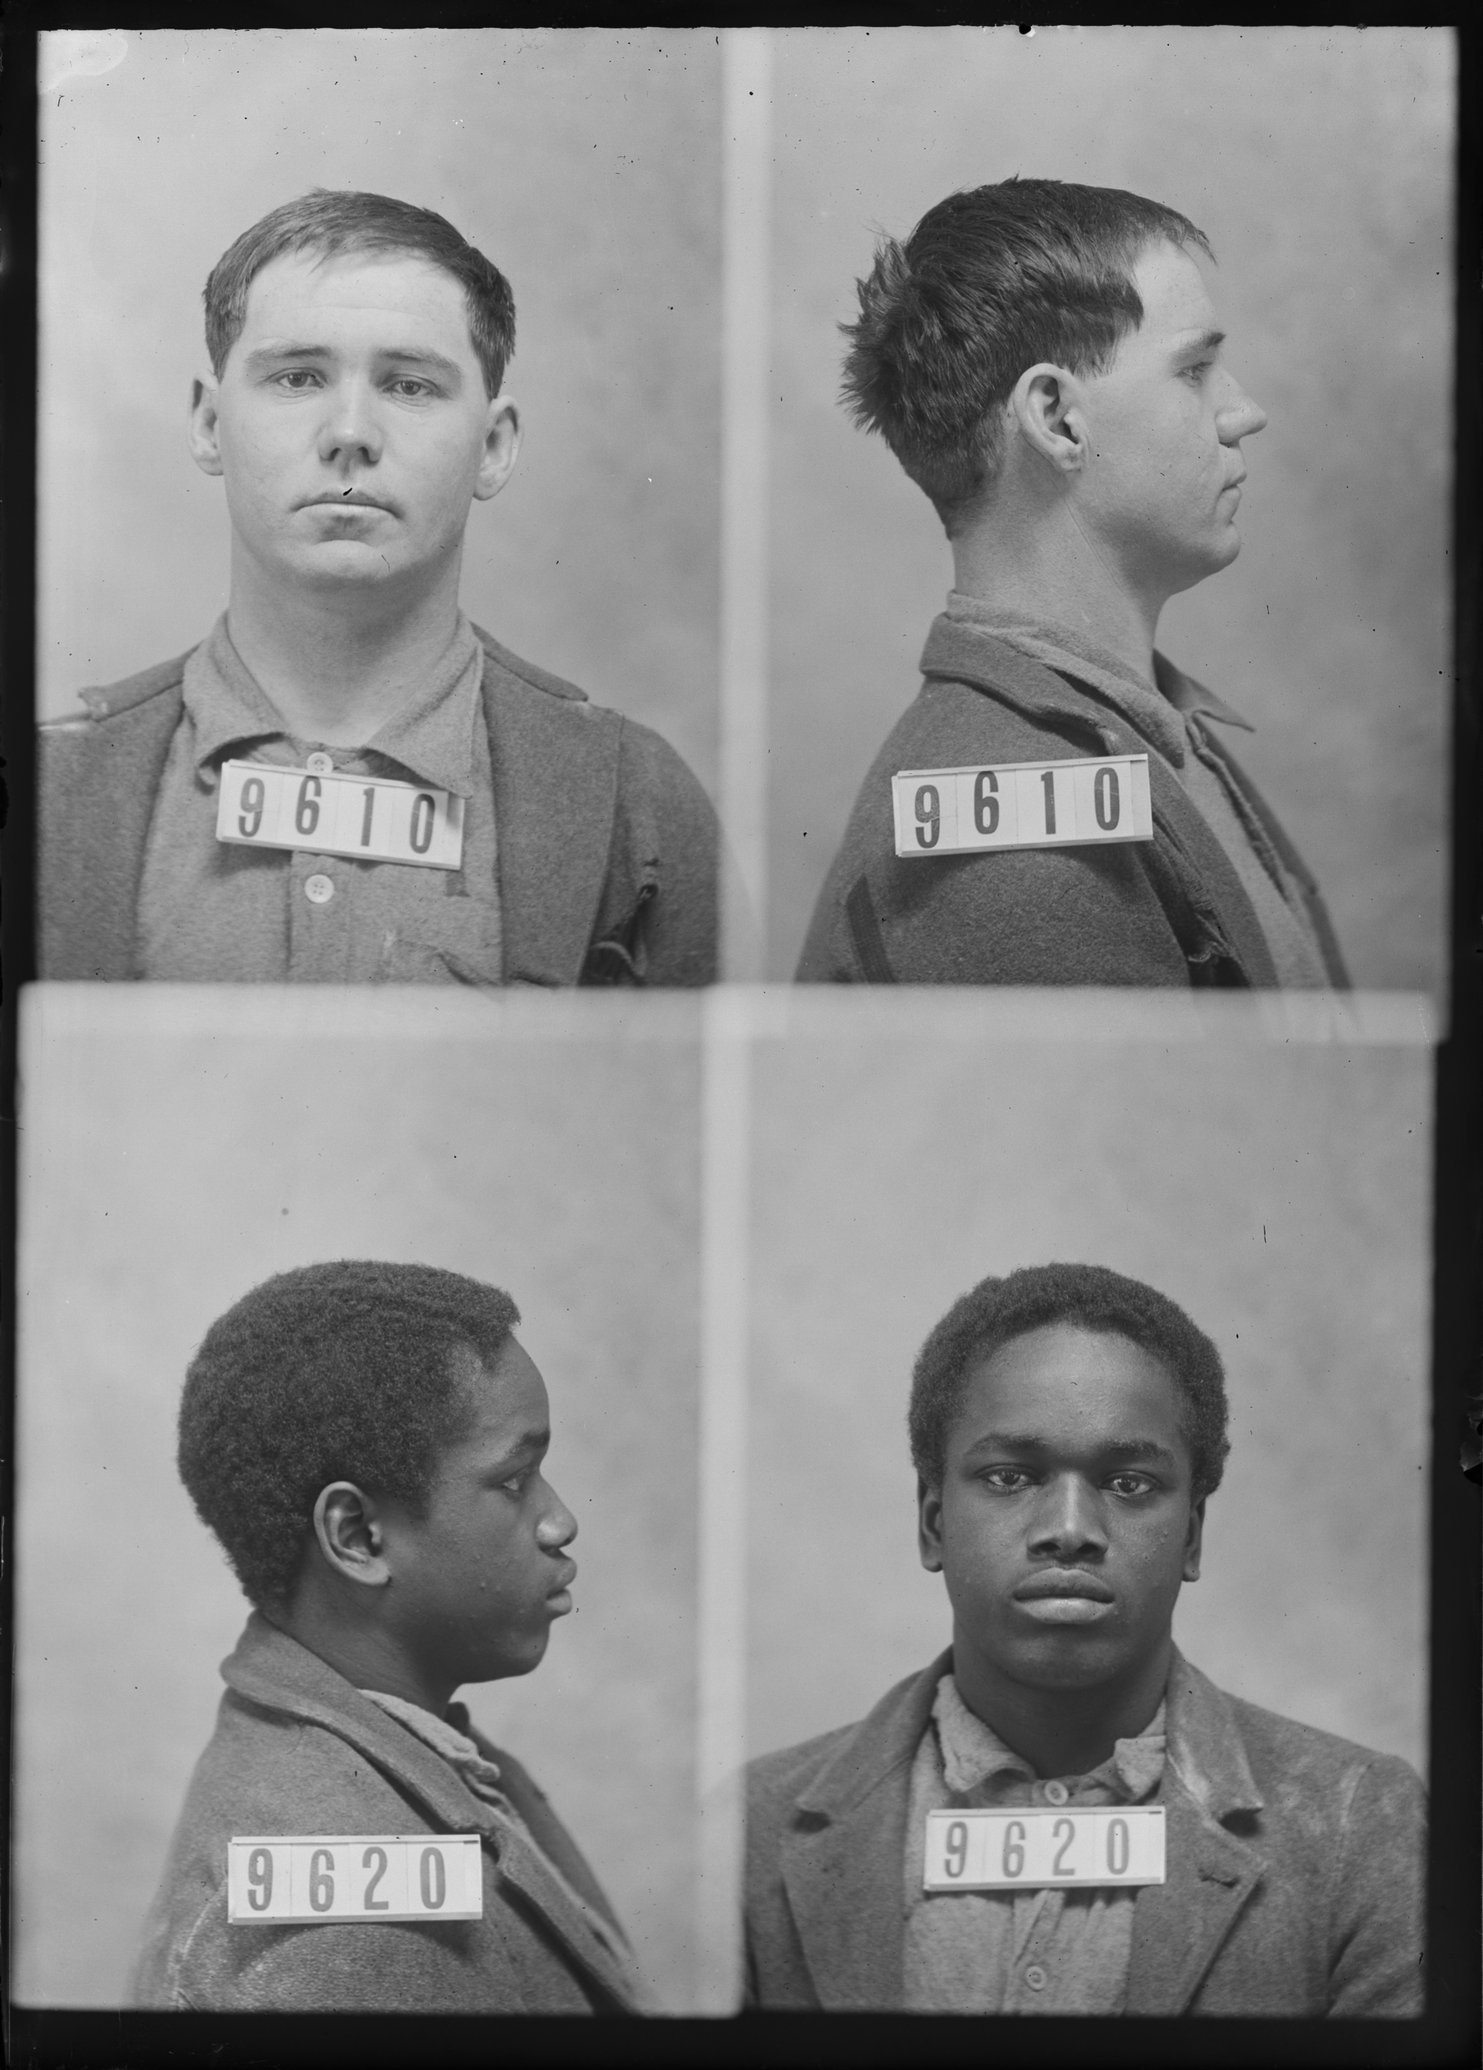 Chas Thompson and Fred Brown Prisoners 9610 and 9620 Kansas